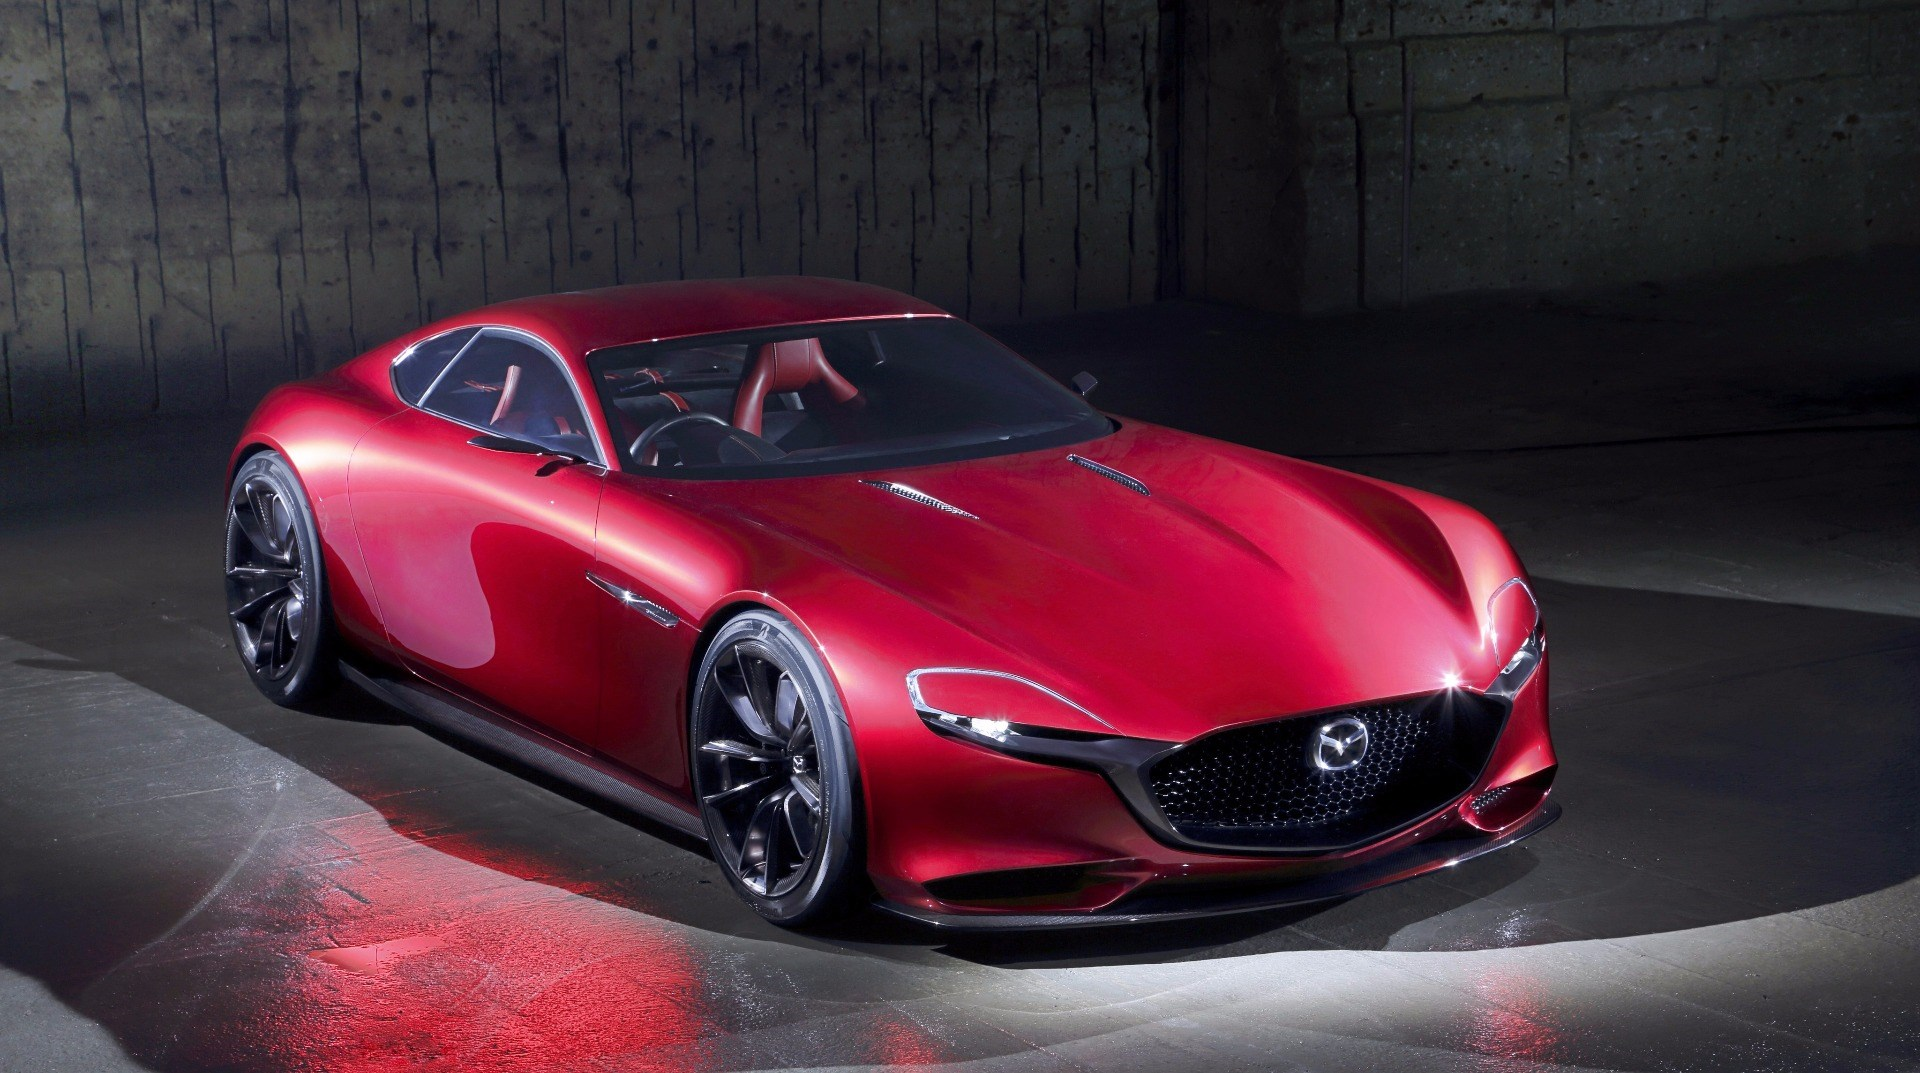 2020 Reveal For Mazda's 300kW RX-9? Thumbnail